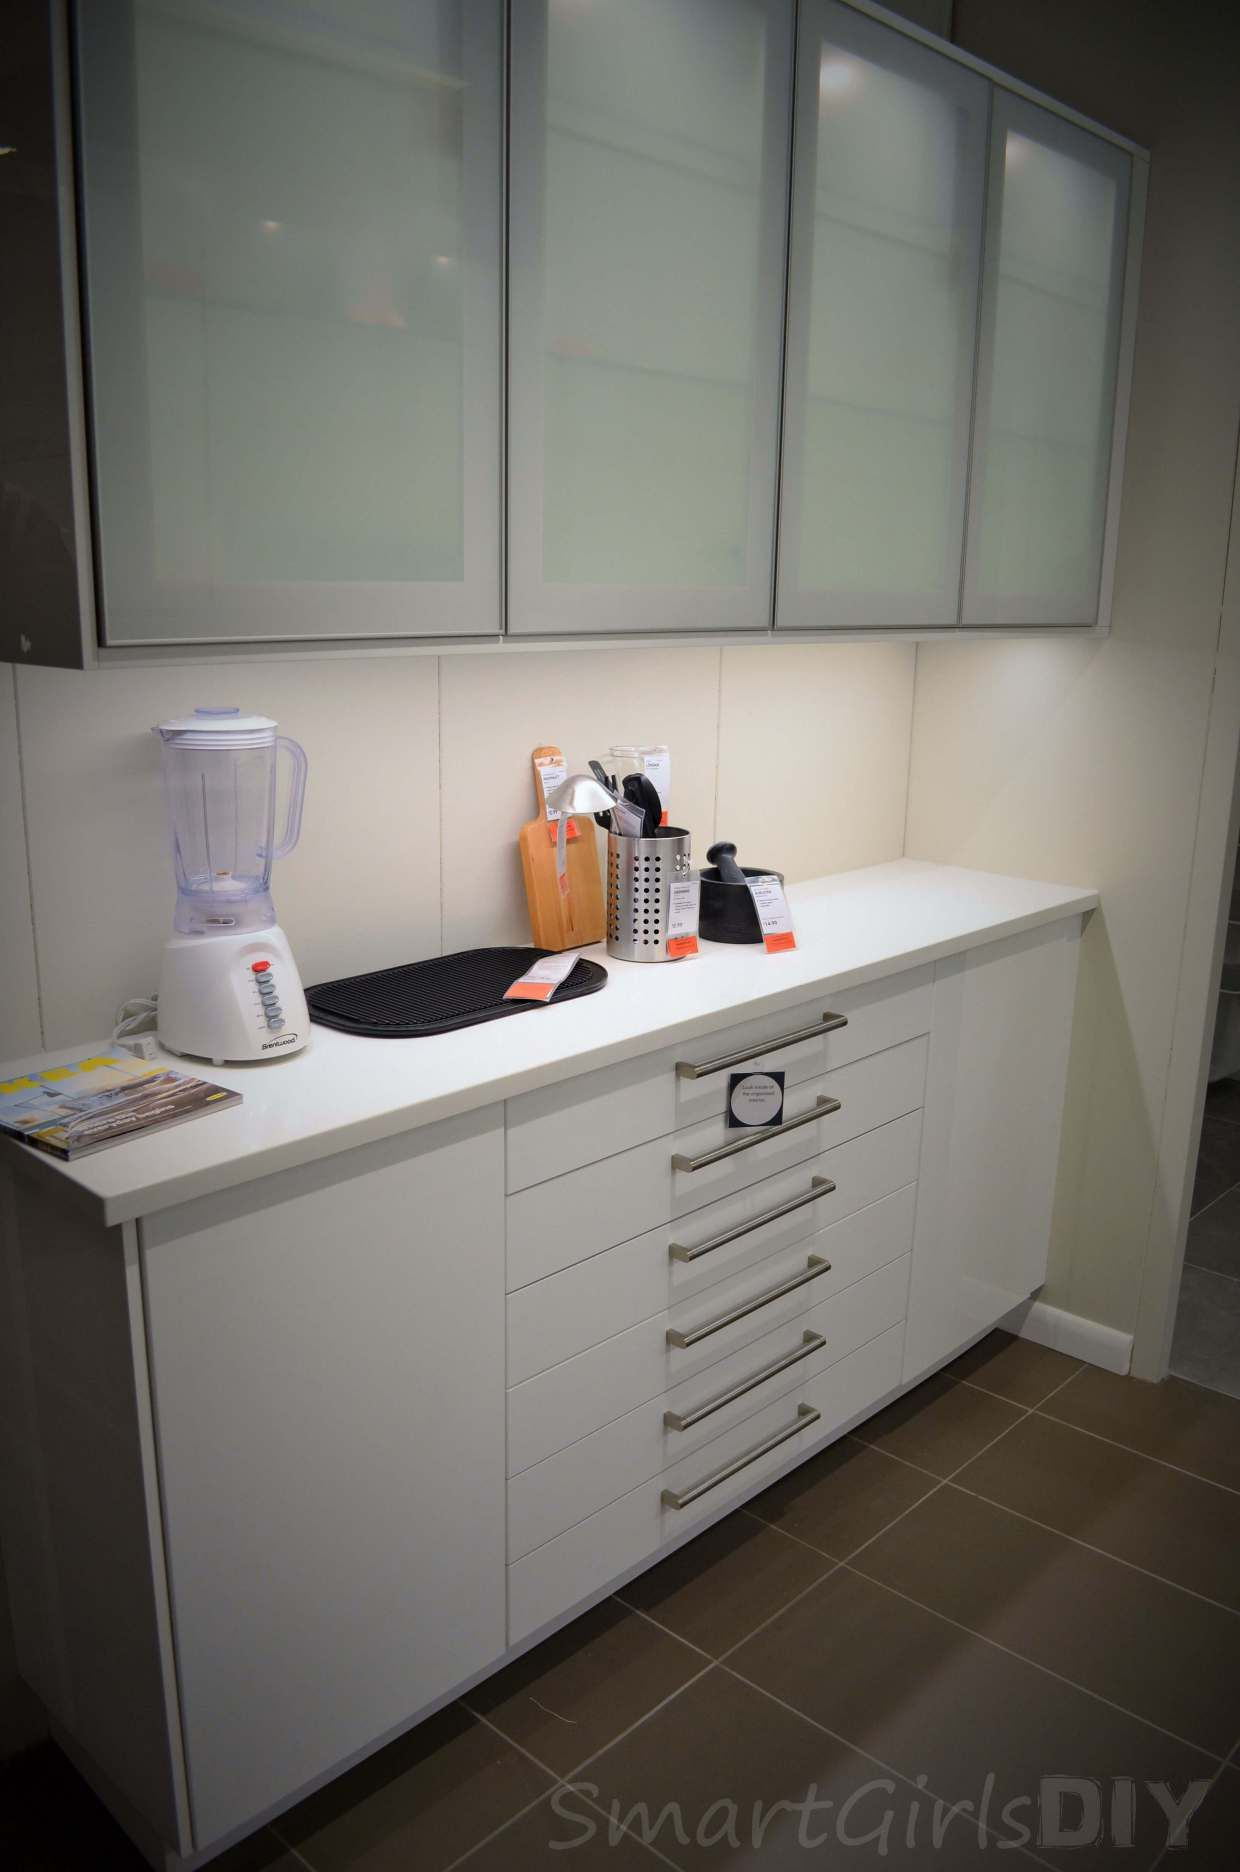 Sektion 15 Wall Cabinets As Base Cabinets With Drawers Spenser S